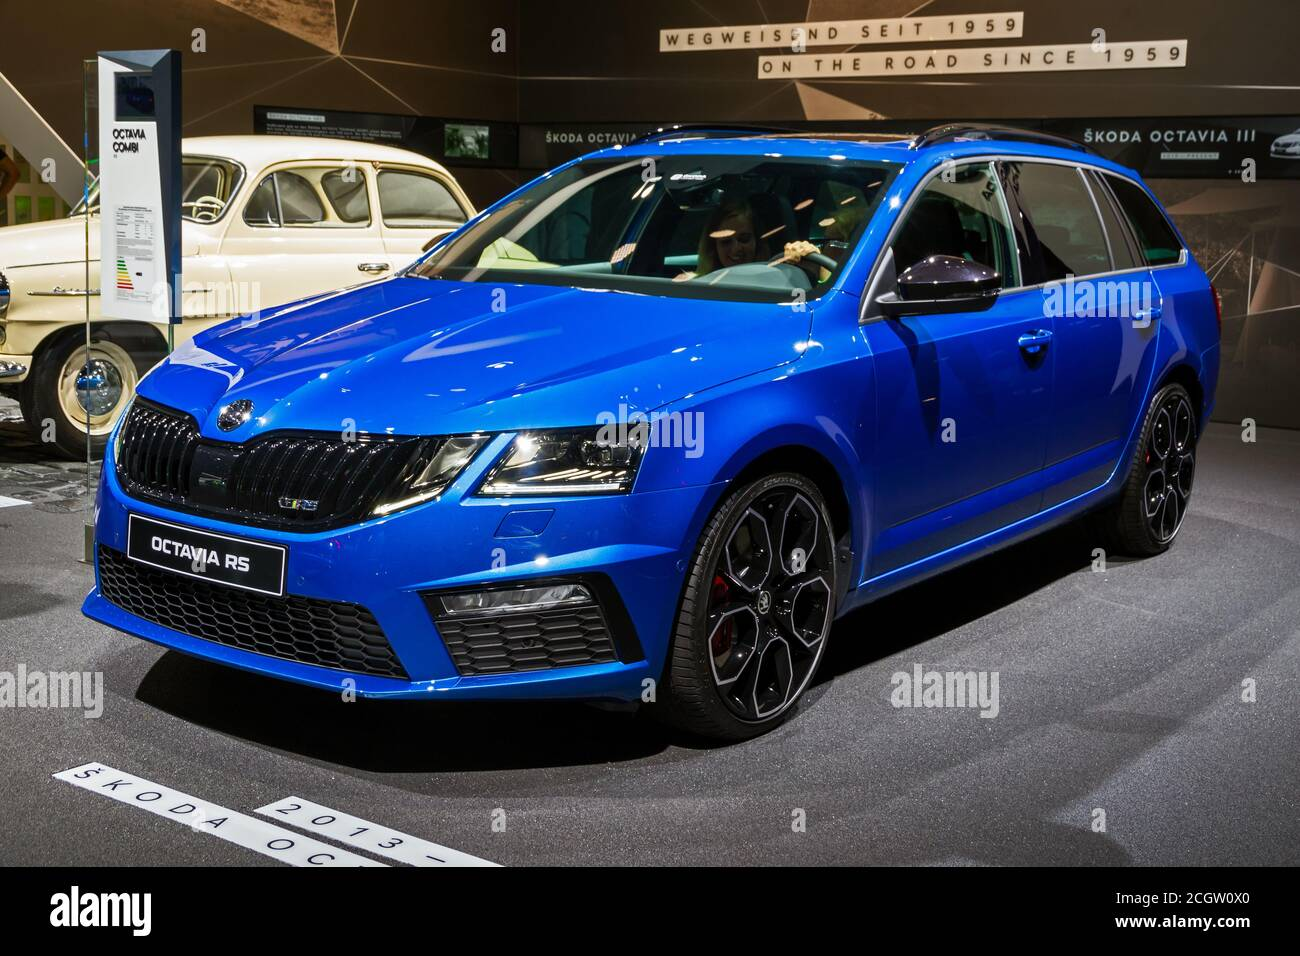 Page 2 Skoda Octavia High Resolution Stock Photography And Images Alamy